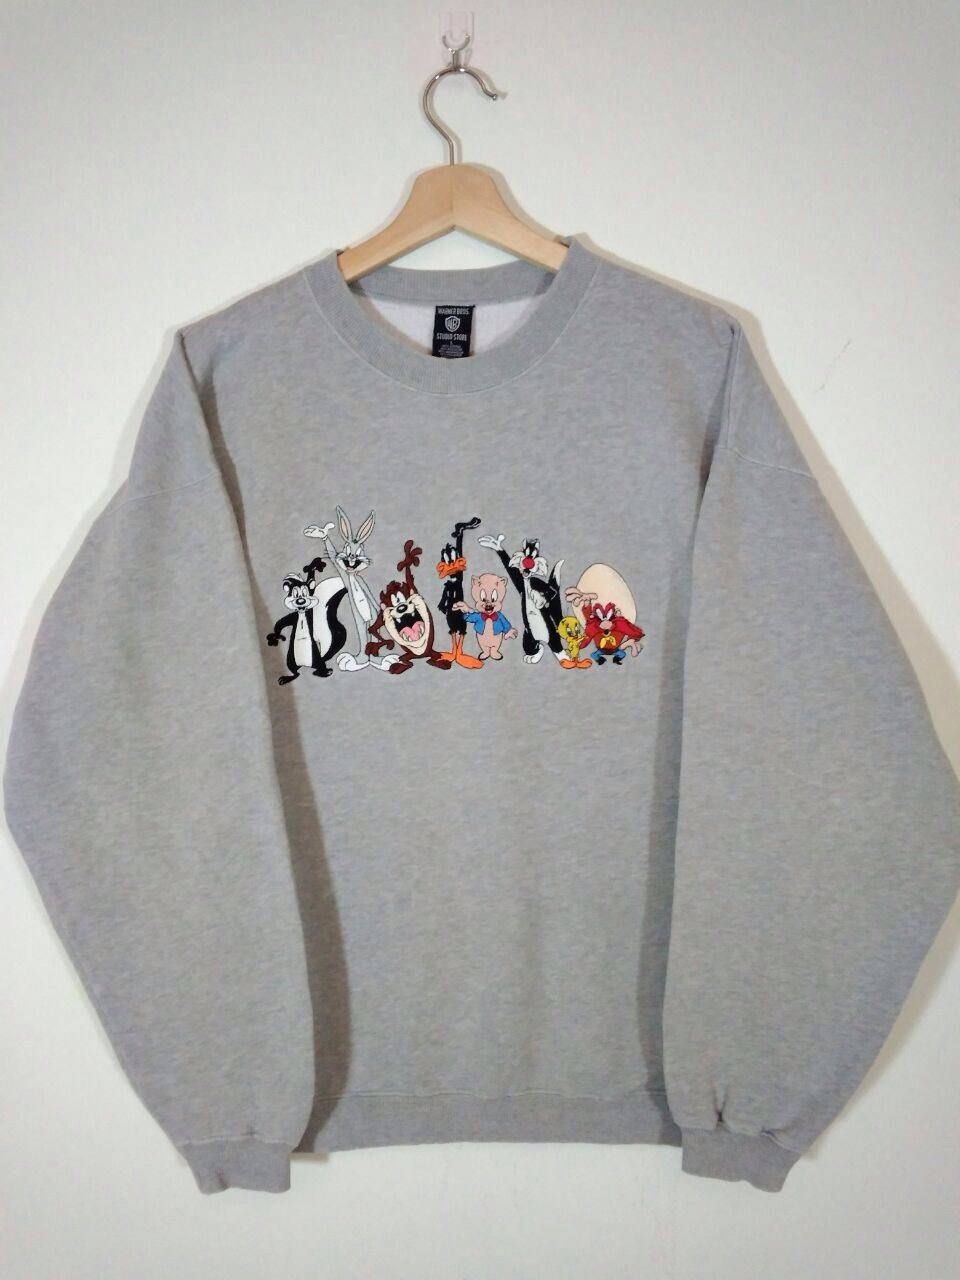 311dd21b Vintage 90s Warner Bros. Cartoon Embroidery 8 Characters Bug  Bunny,Tasmanian Devil,Tweety Grey Sweatshirt | Sweater | Jumper Size L by  Tweety3Vintage on ...